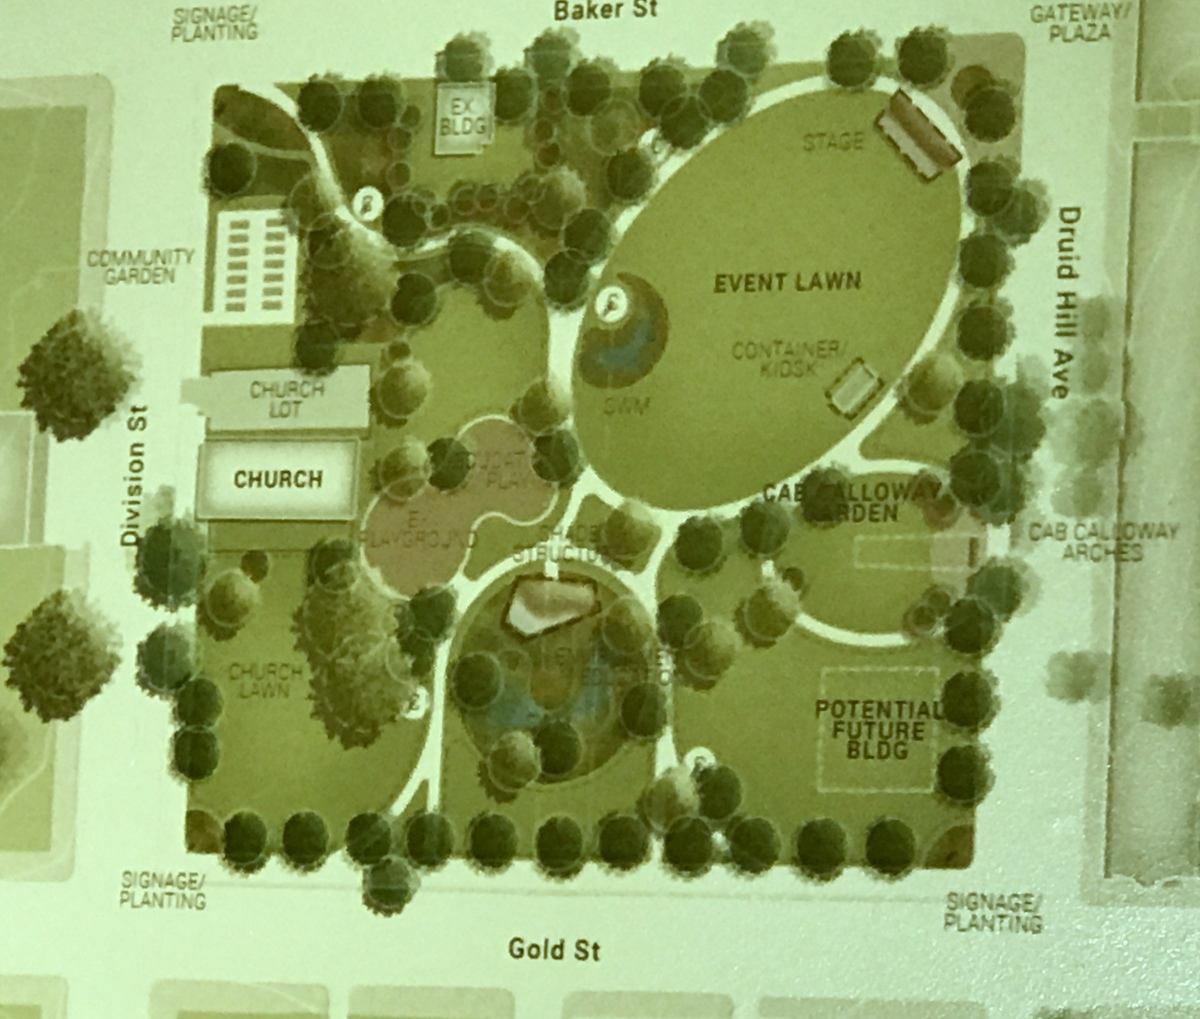 Concept A for the proposed Cab Calloway Park. Concept B would shift the focus of the vent lawn to the